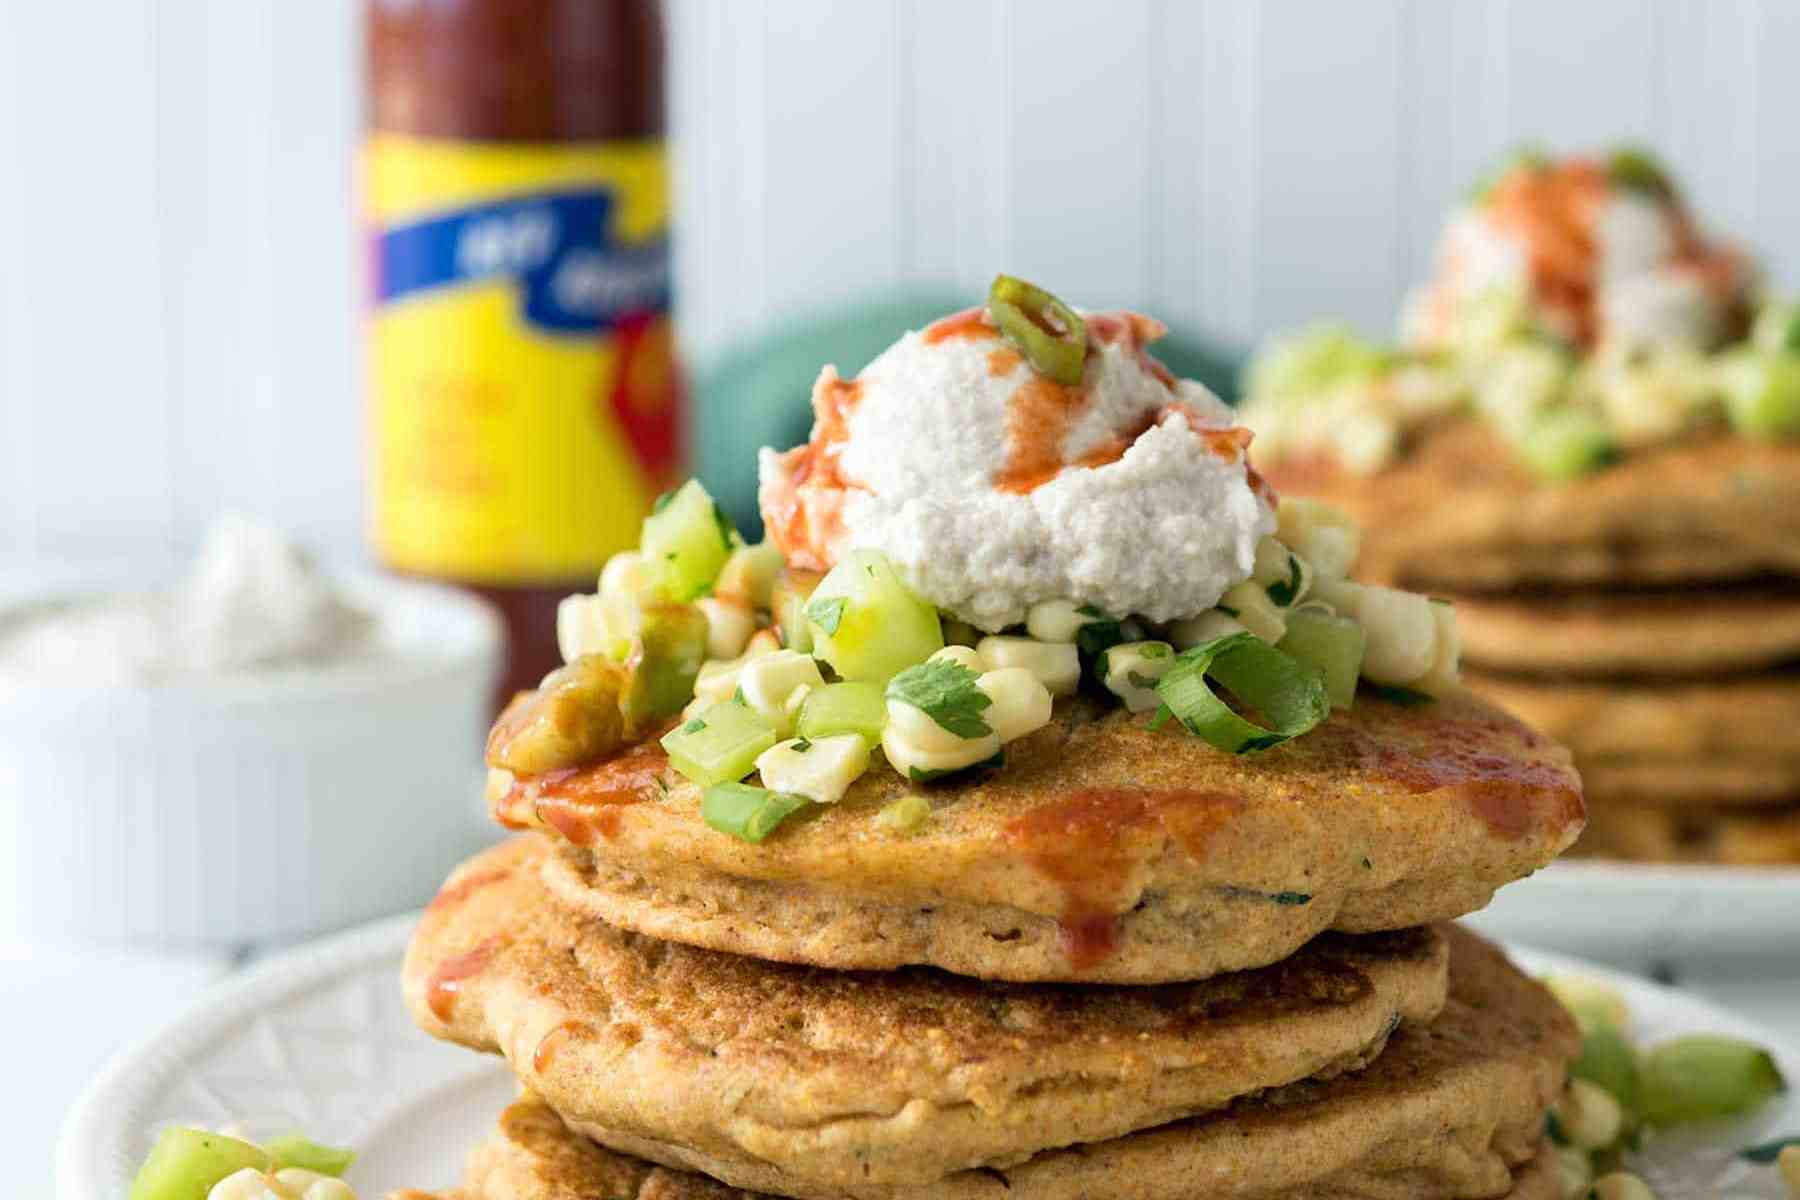 Zucchini Corn Cakes with Green Tomato Relish + Sunflower Sour Cream! A wonderful, savory, summer breakfast. #vegan #soyfree #nutfree #veganyackattack